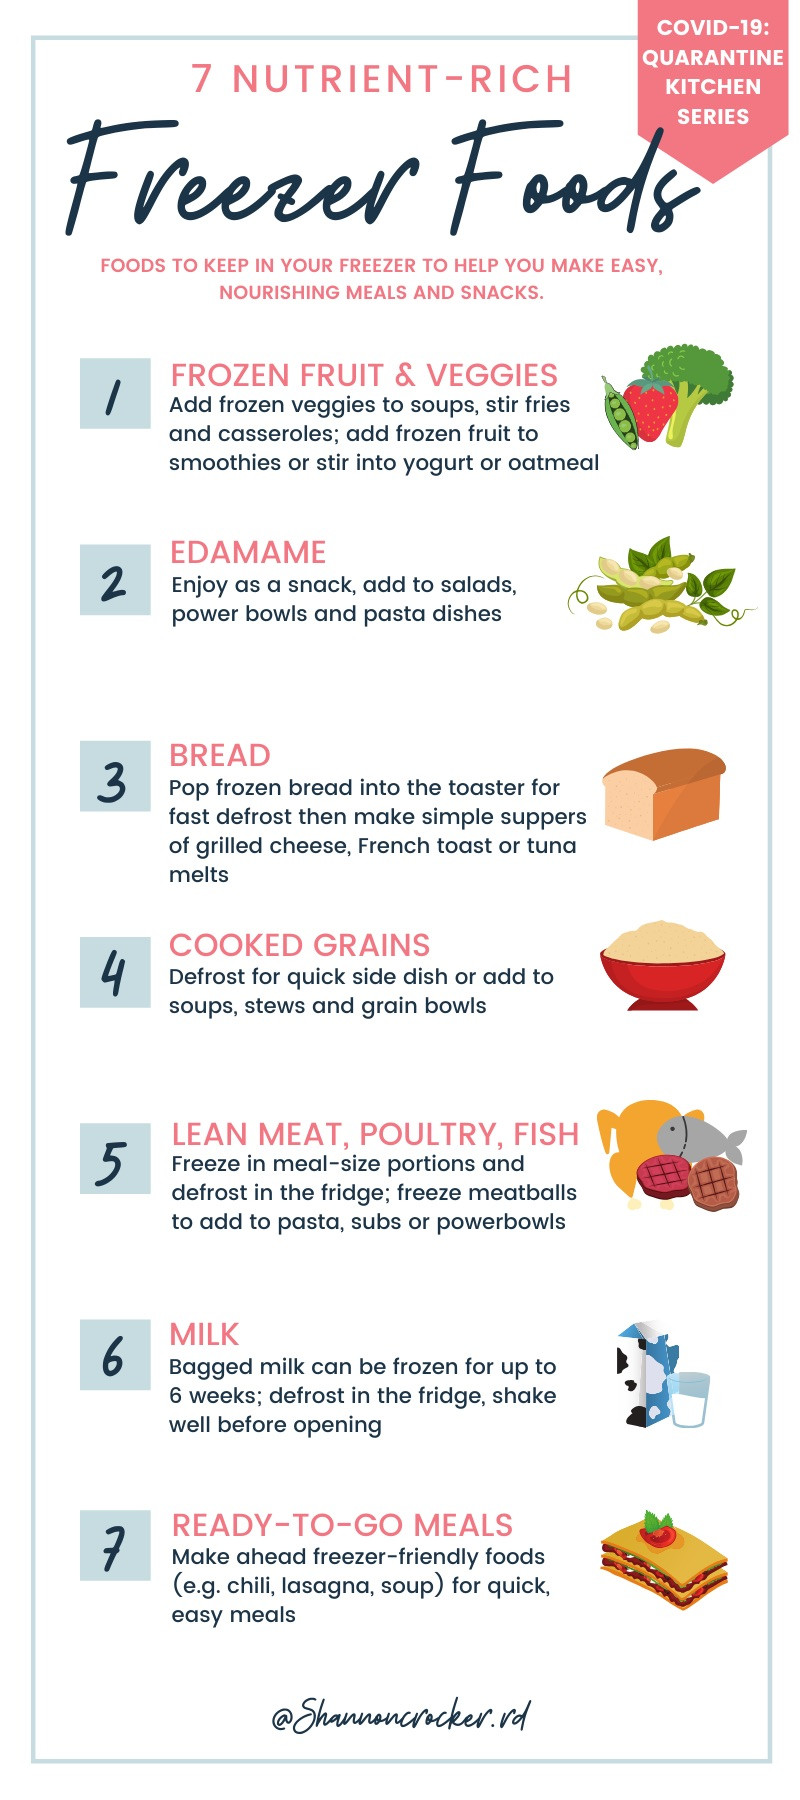 an infographic of 7 nutrient-rich freezer foods including frozen vegetables and fruit, edamame, bread, cooked whole grains, lean meat, poultry, fish, milk and ready to go meals.